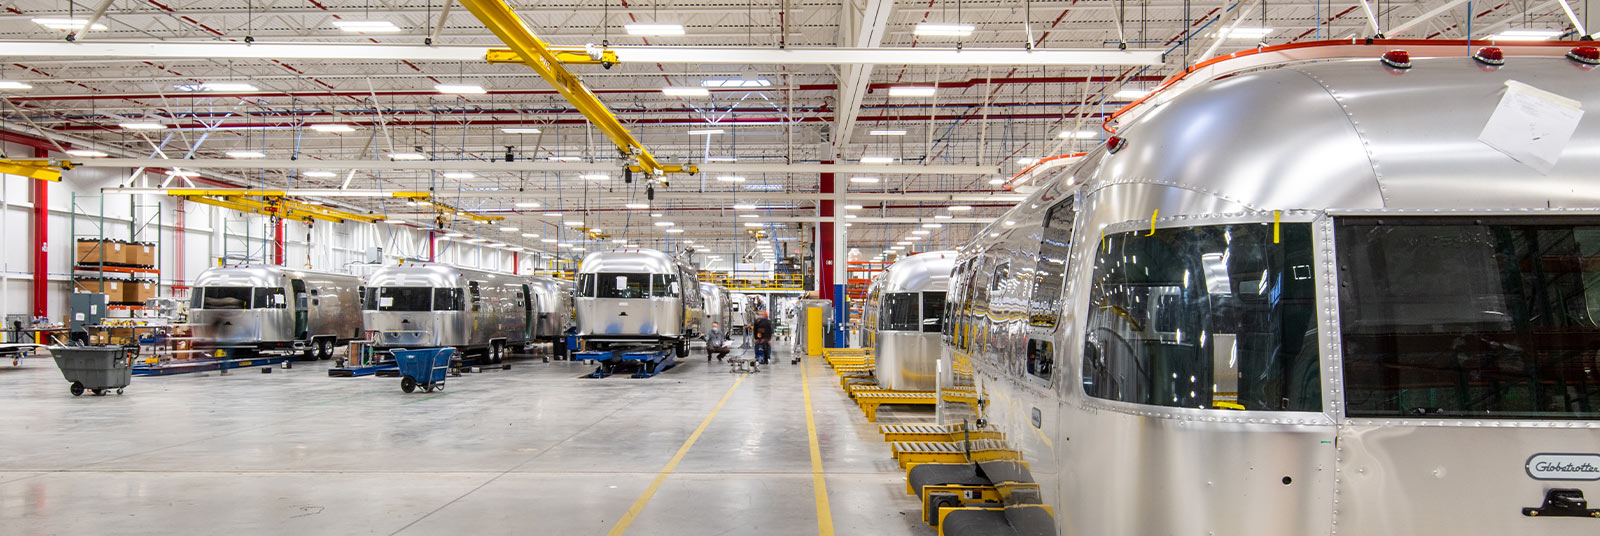 Inside the Airstream industrial facility in Jackson Center, Ohio.